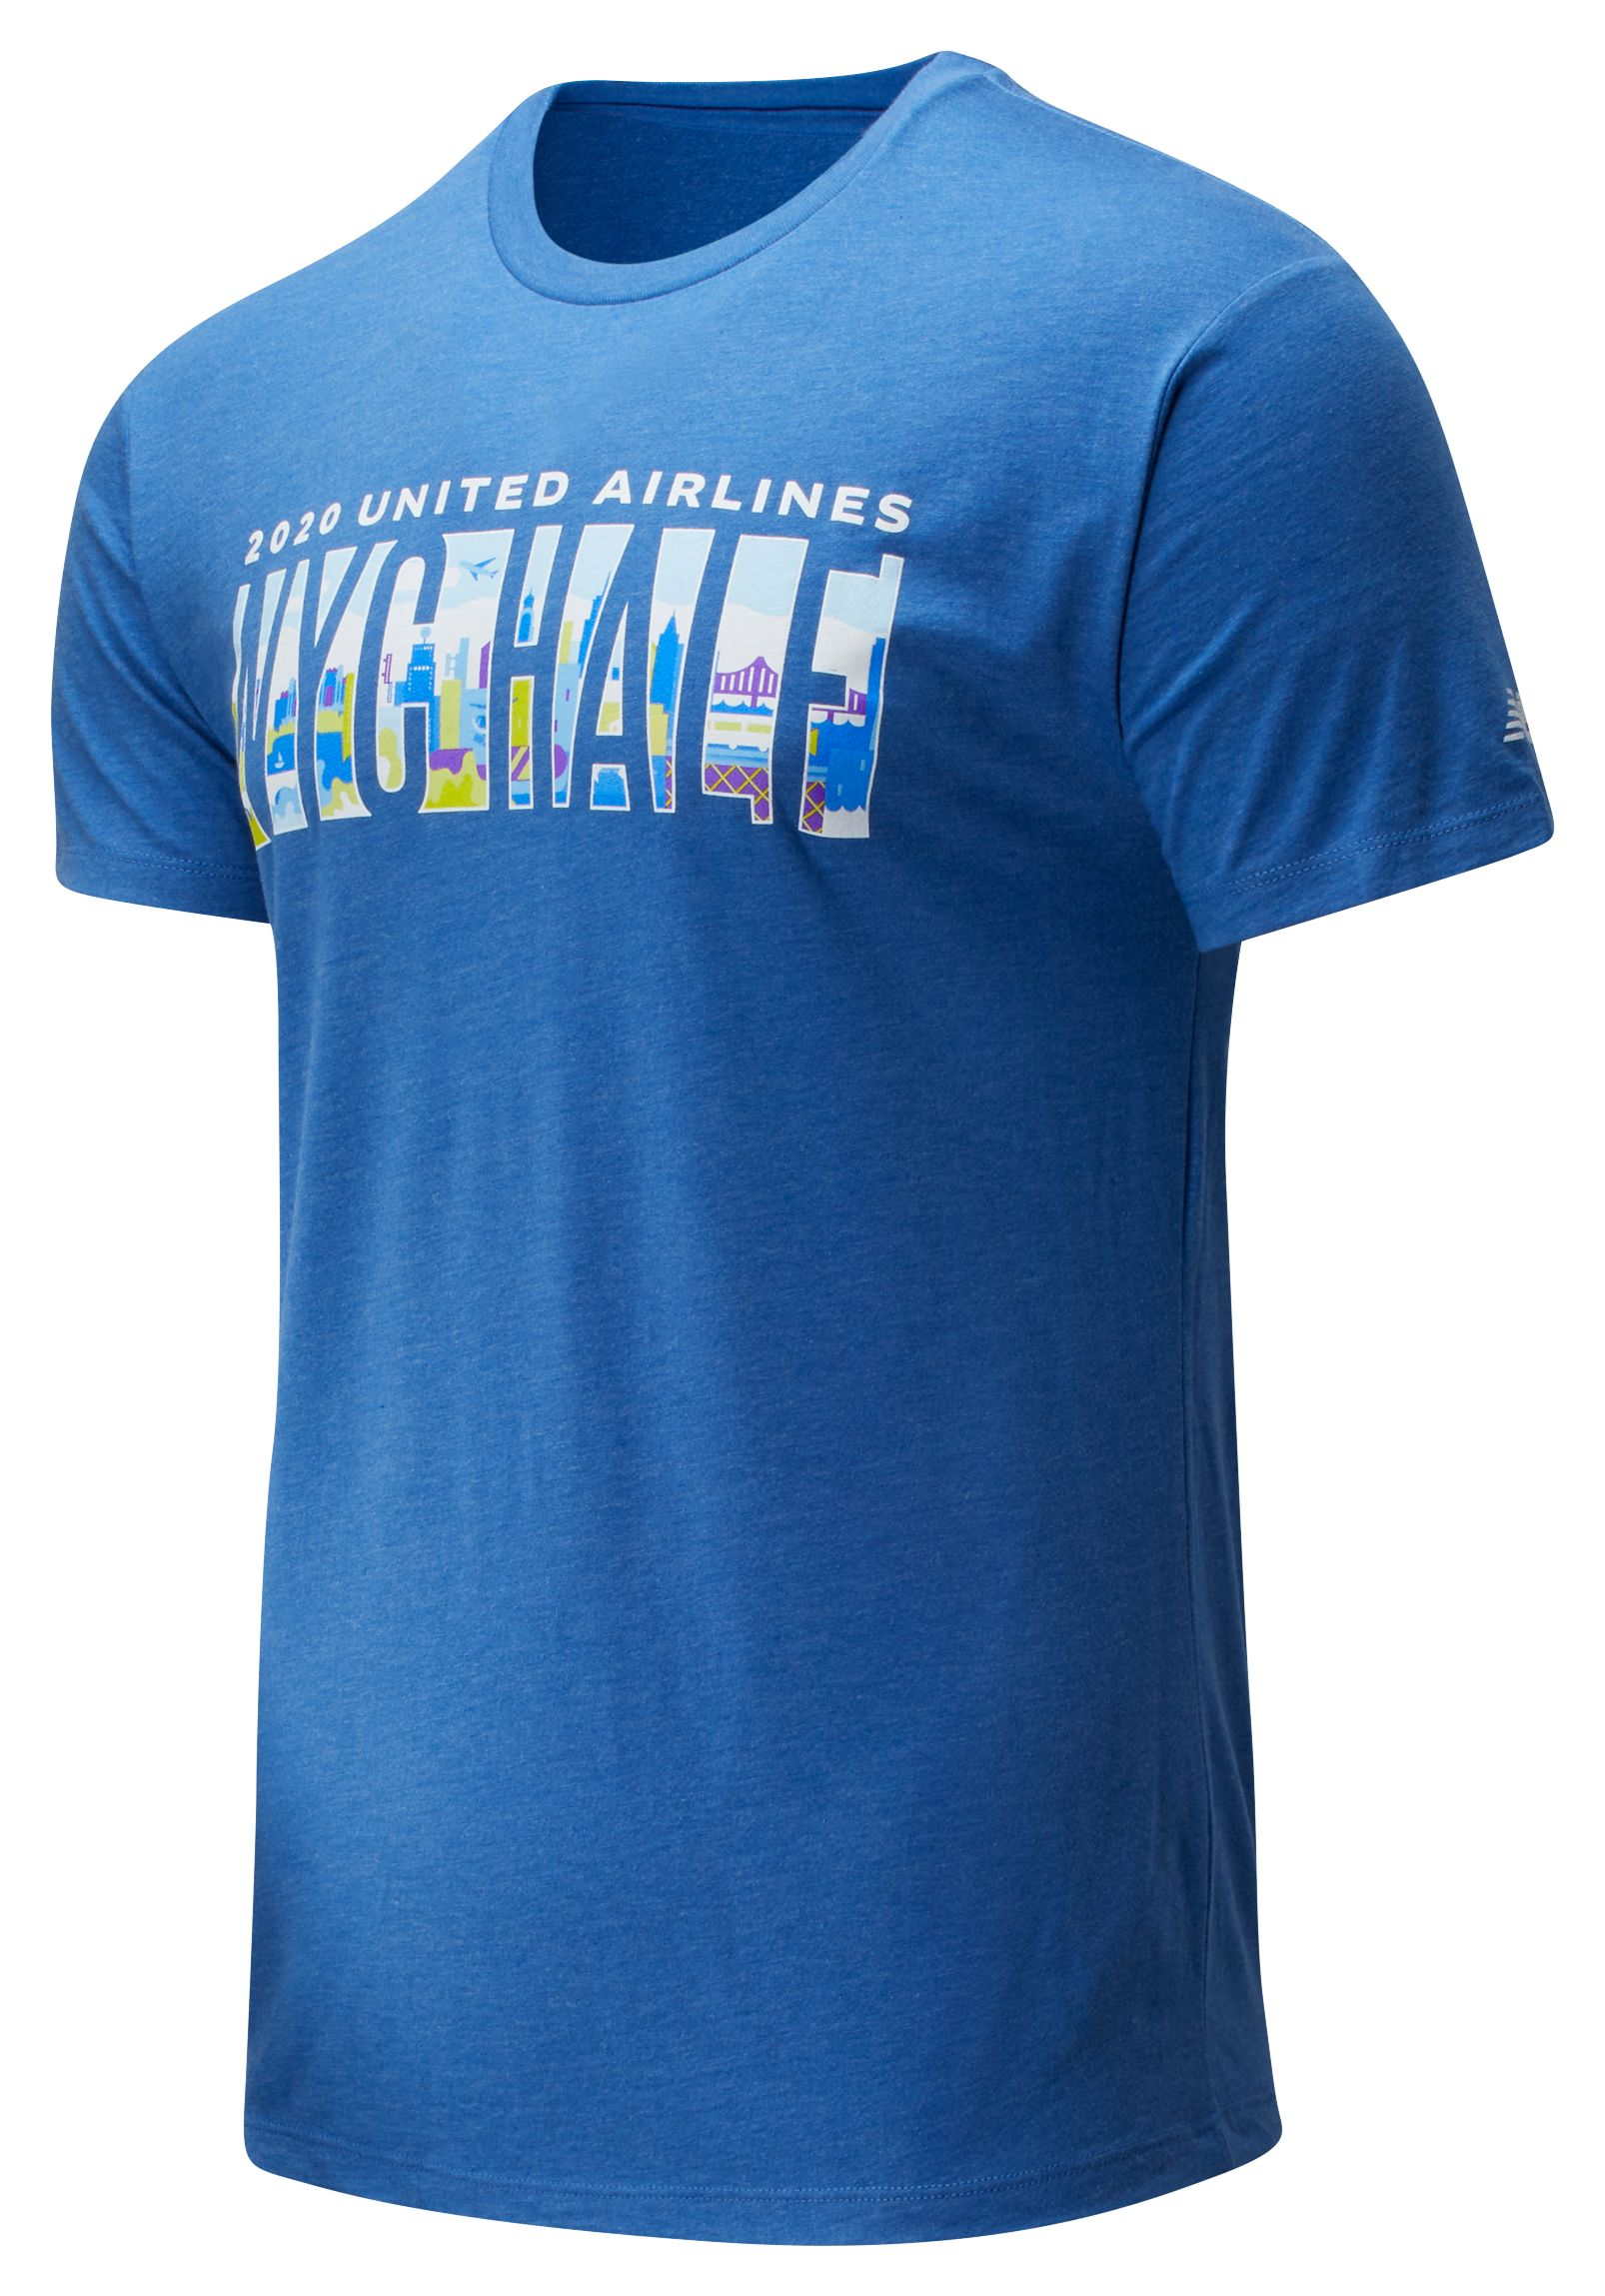 Men's 2020 United Airlines Half Skyline Tee